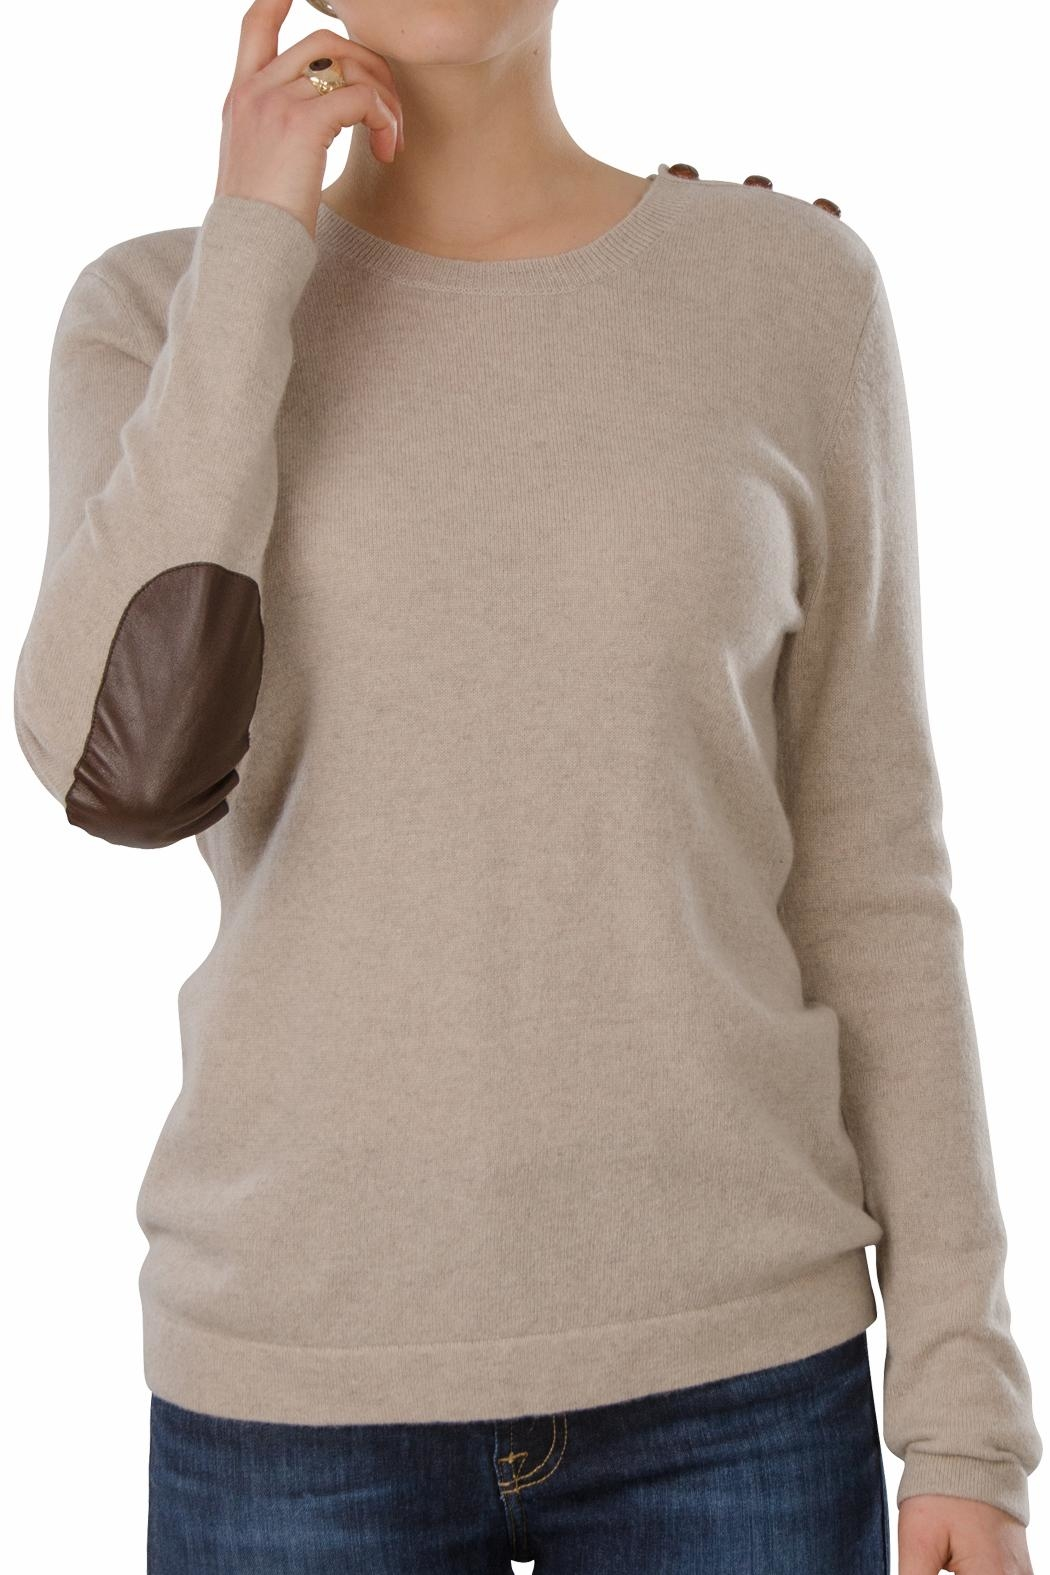 Cortland Park Cashmere Harvard Cashmere Sweater - Front Cropped Image